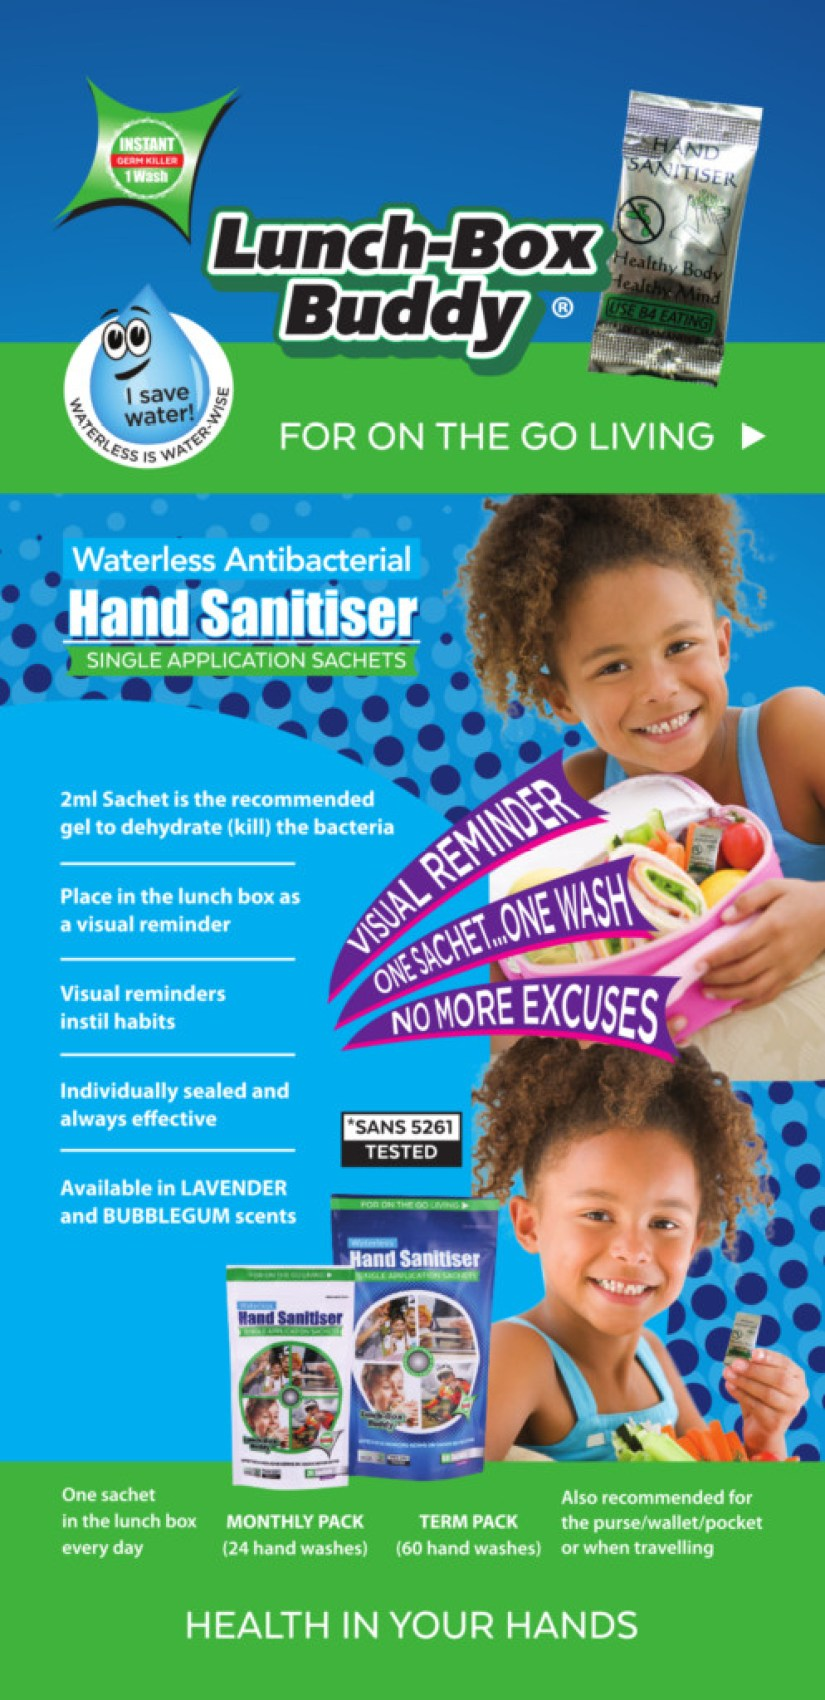 Lunch-Box Buddy Waterless Antibacterial Hand Sanitiser